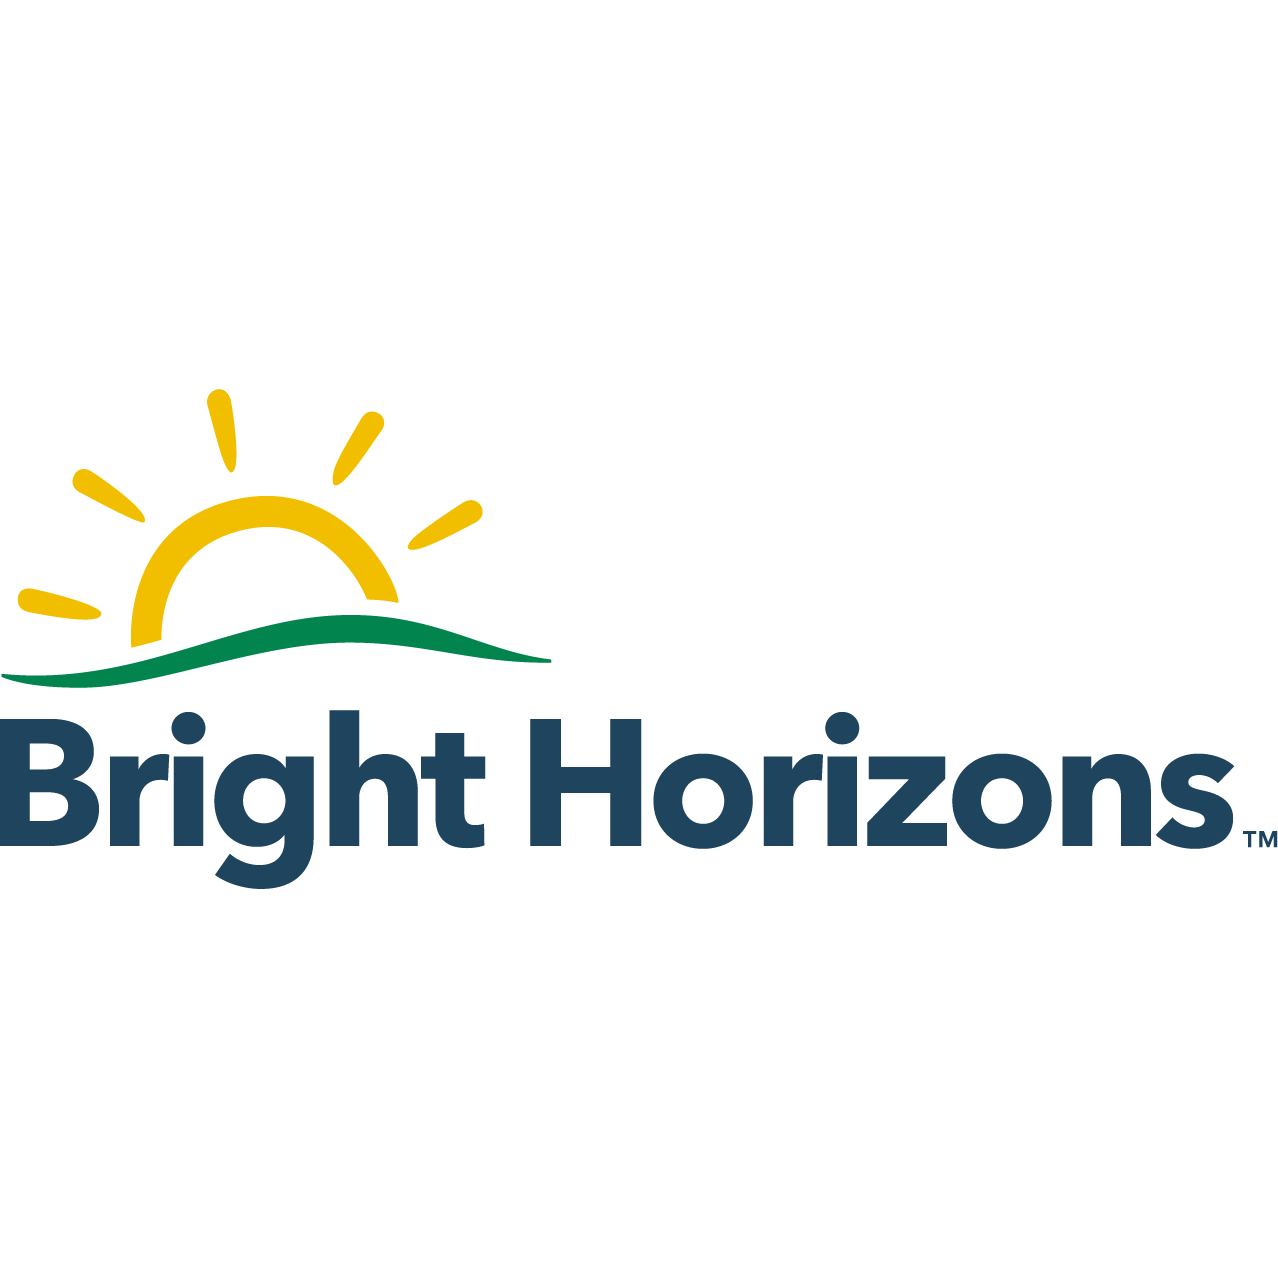 Bright Horizons Raynes Park Day Nursery and Preschool - Wimbledon, London SW20 0QN - 03300 571603 | ShowMeLocal.com